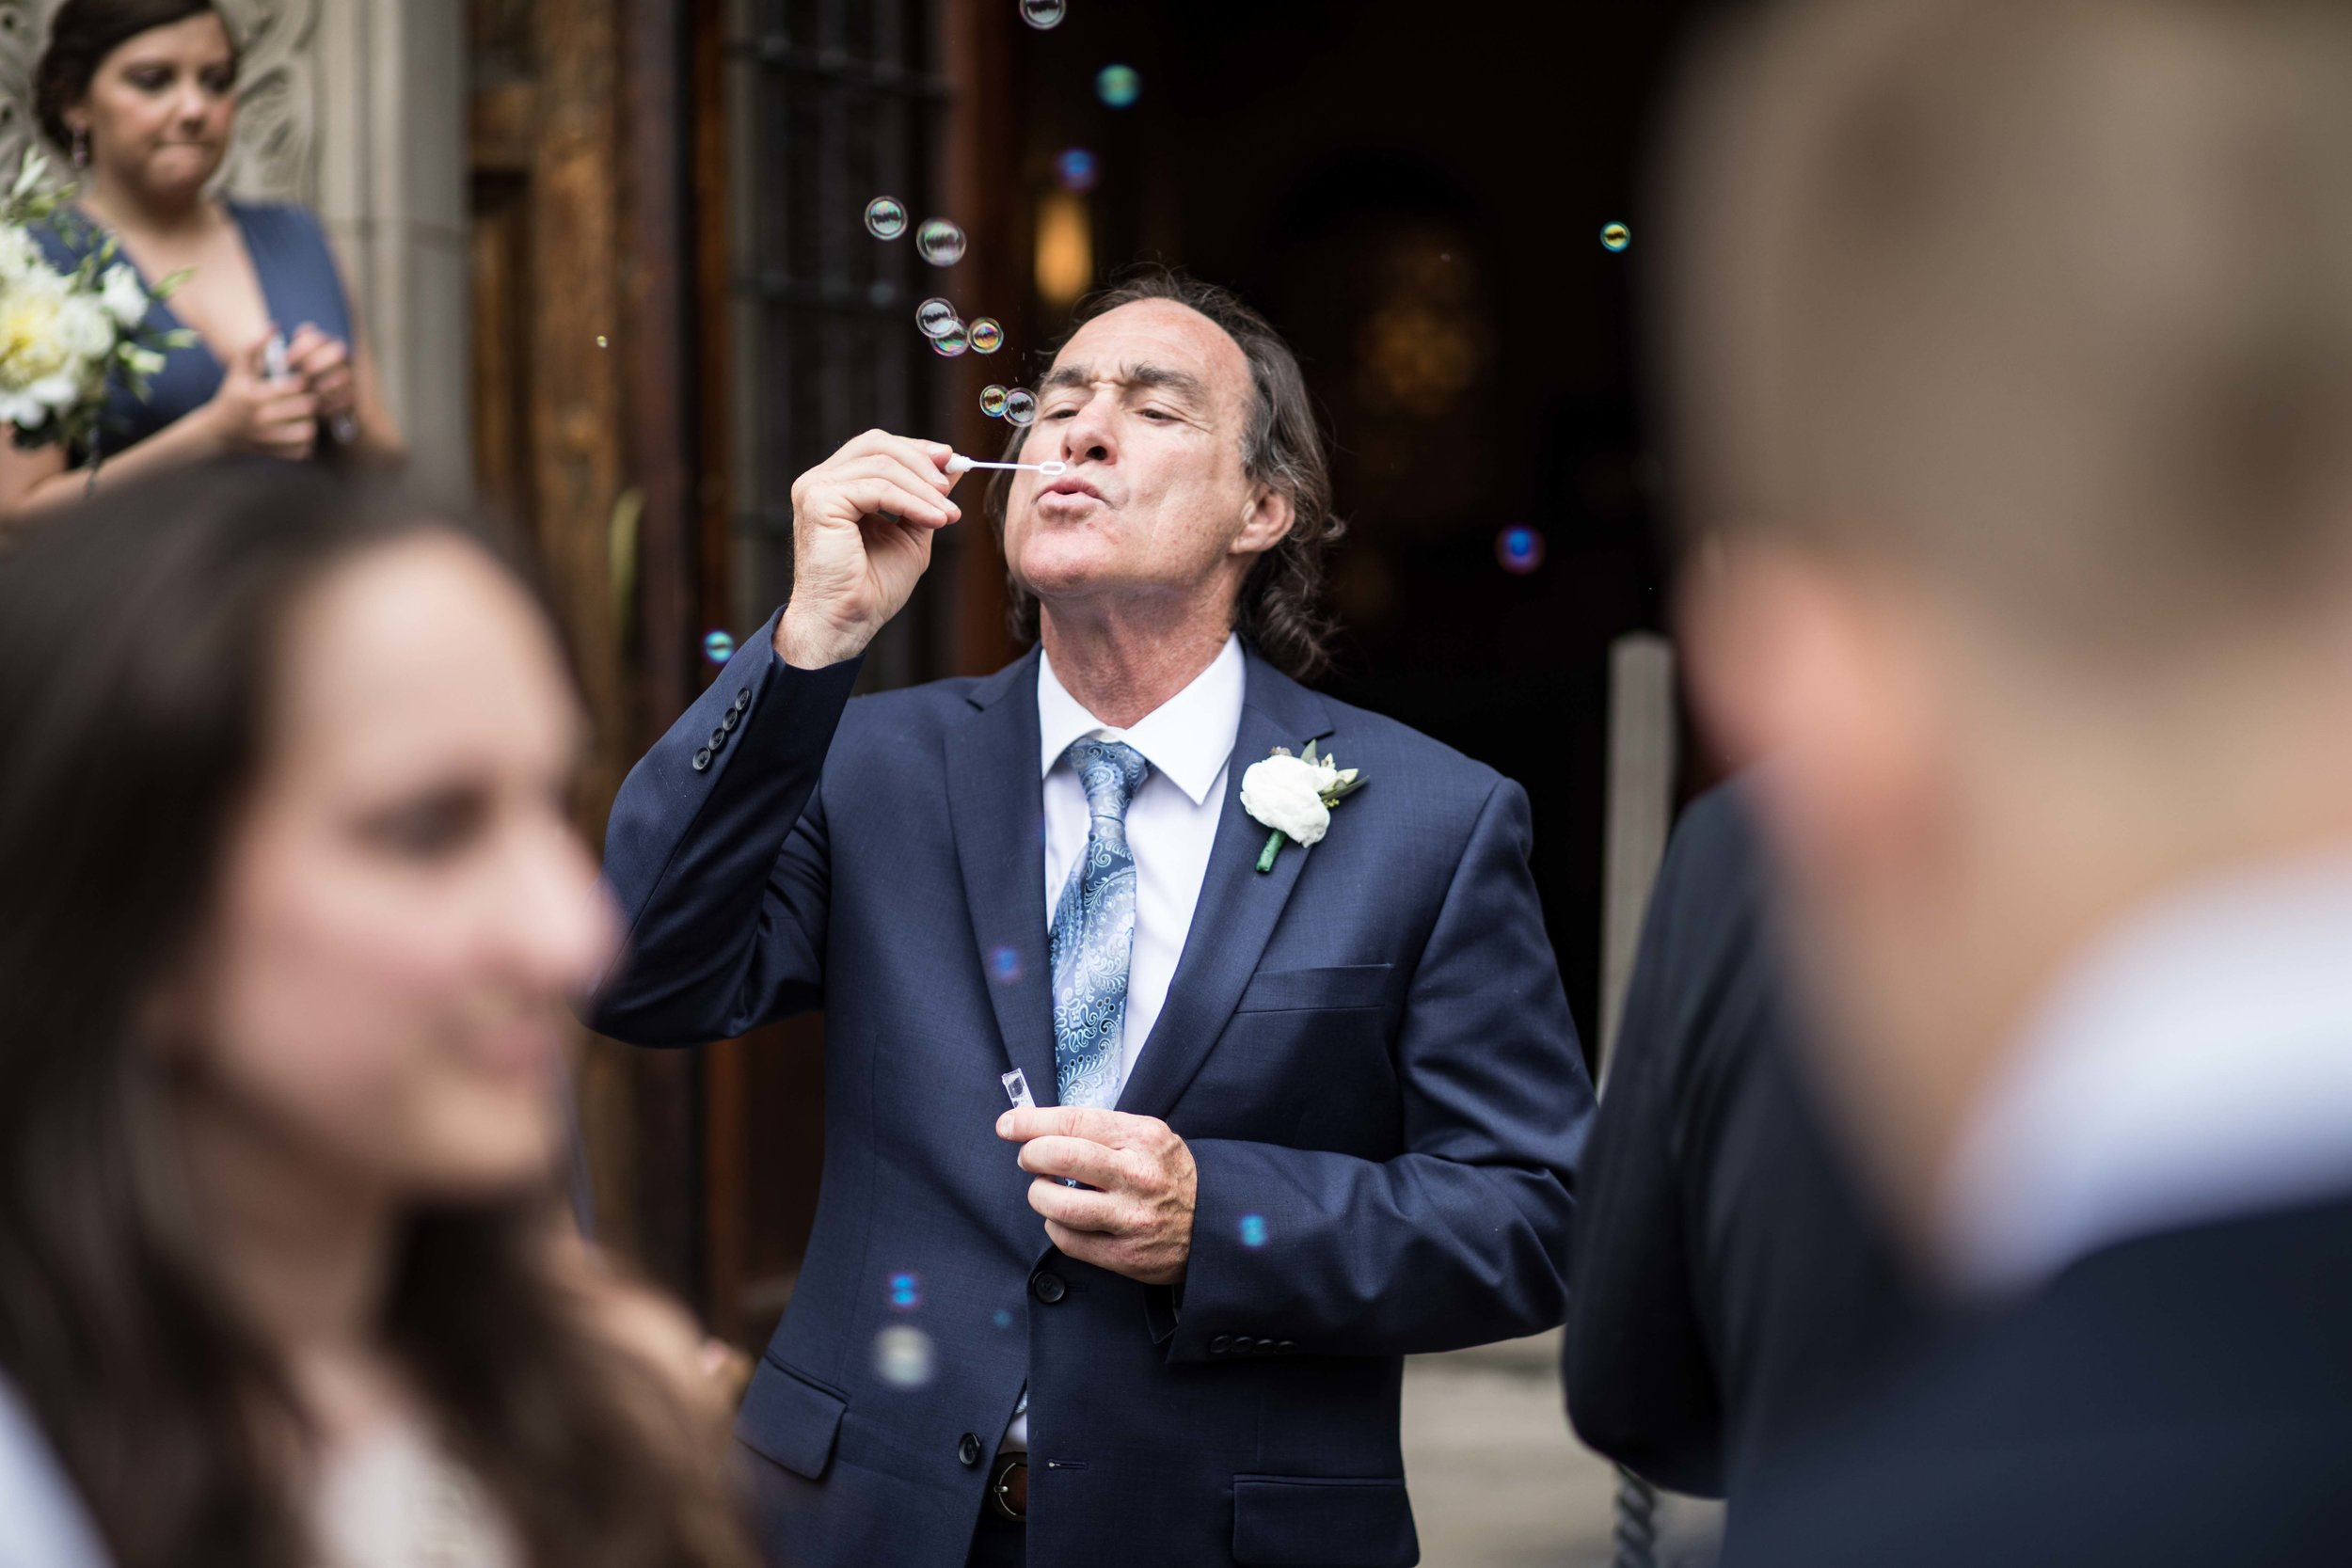 Father of the Groom testing bubble wand